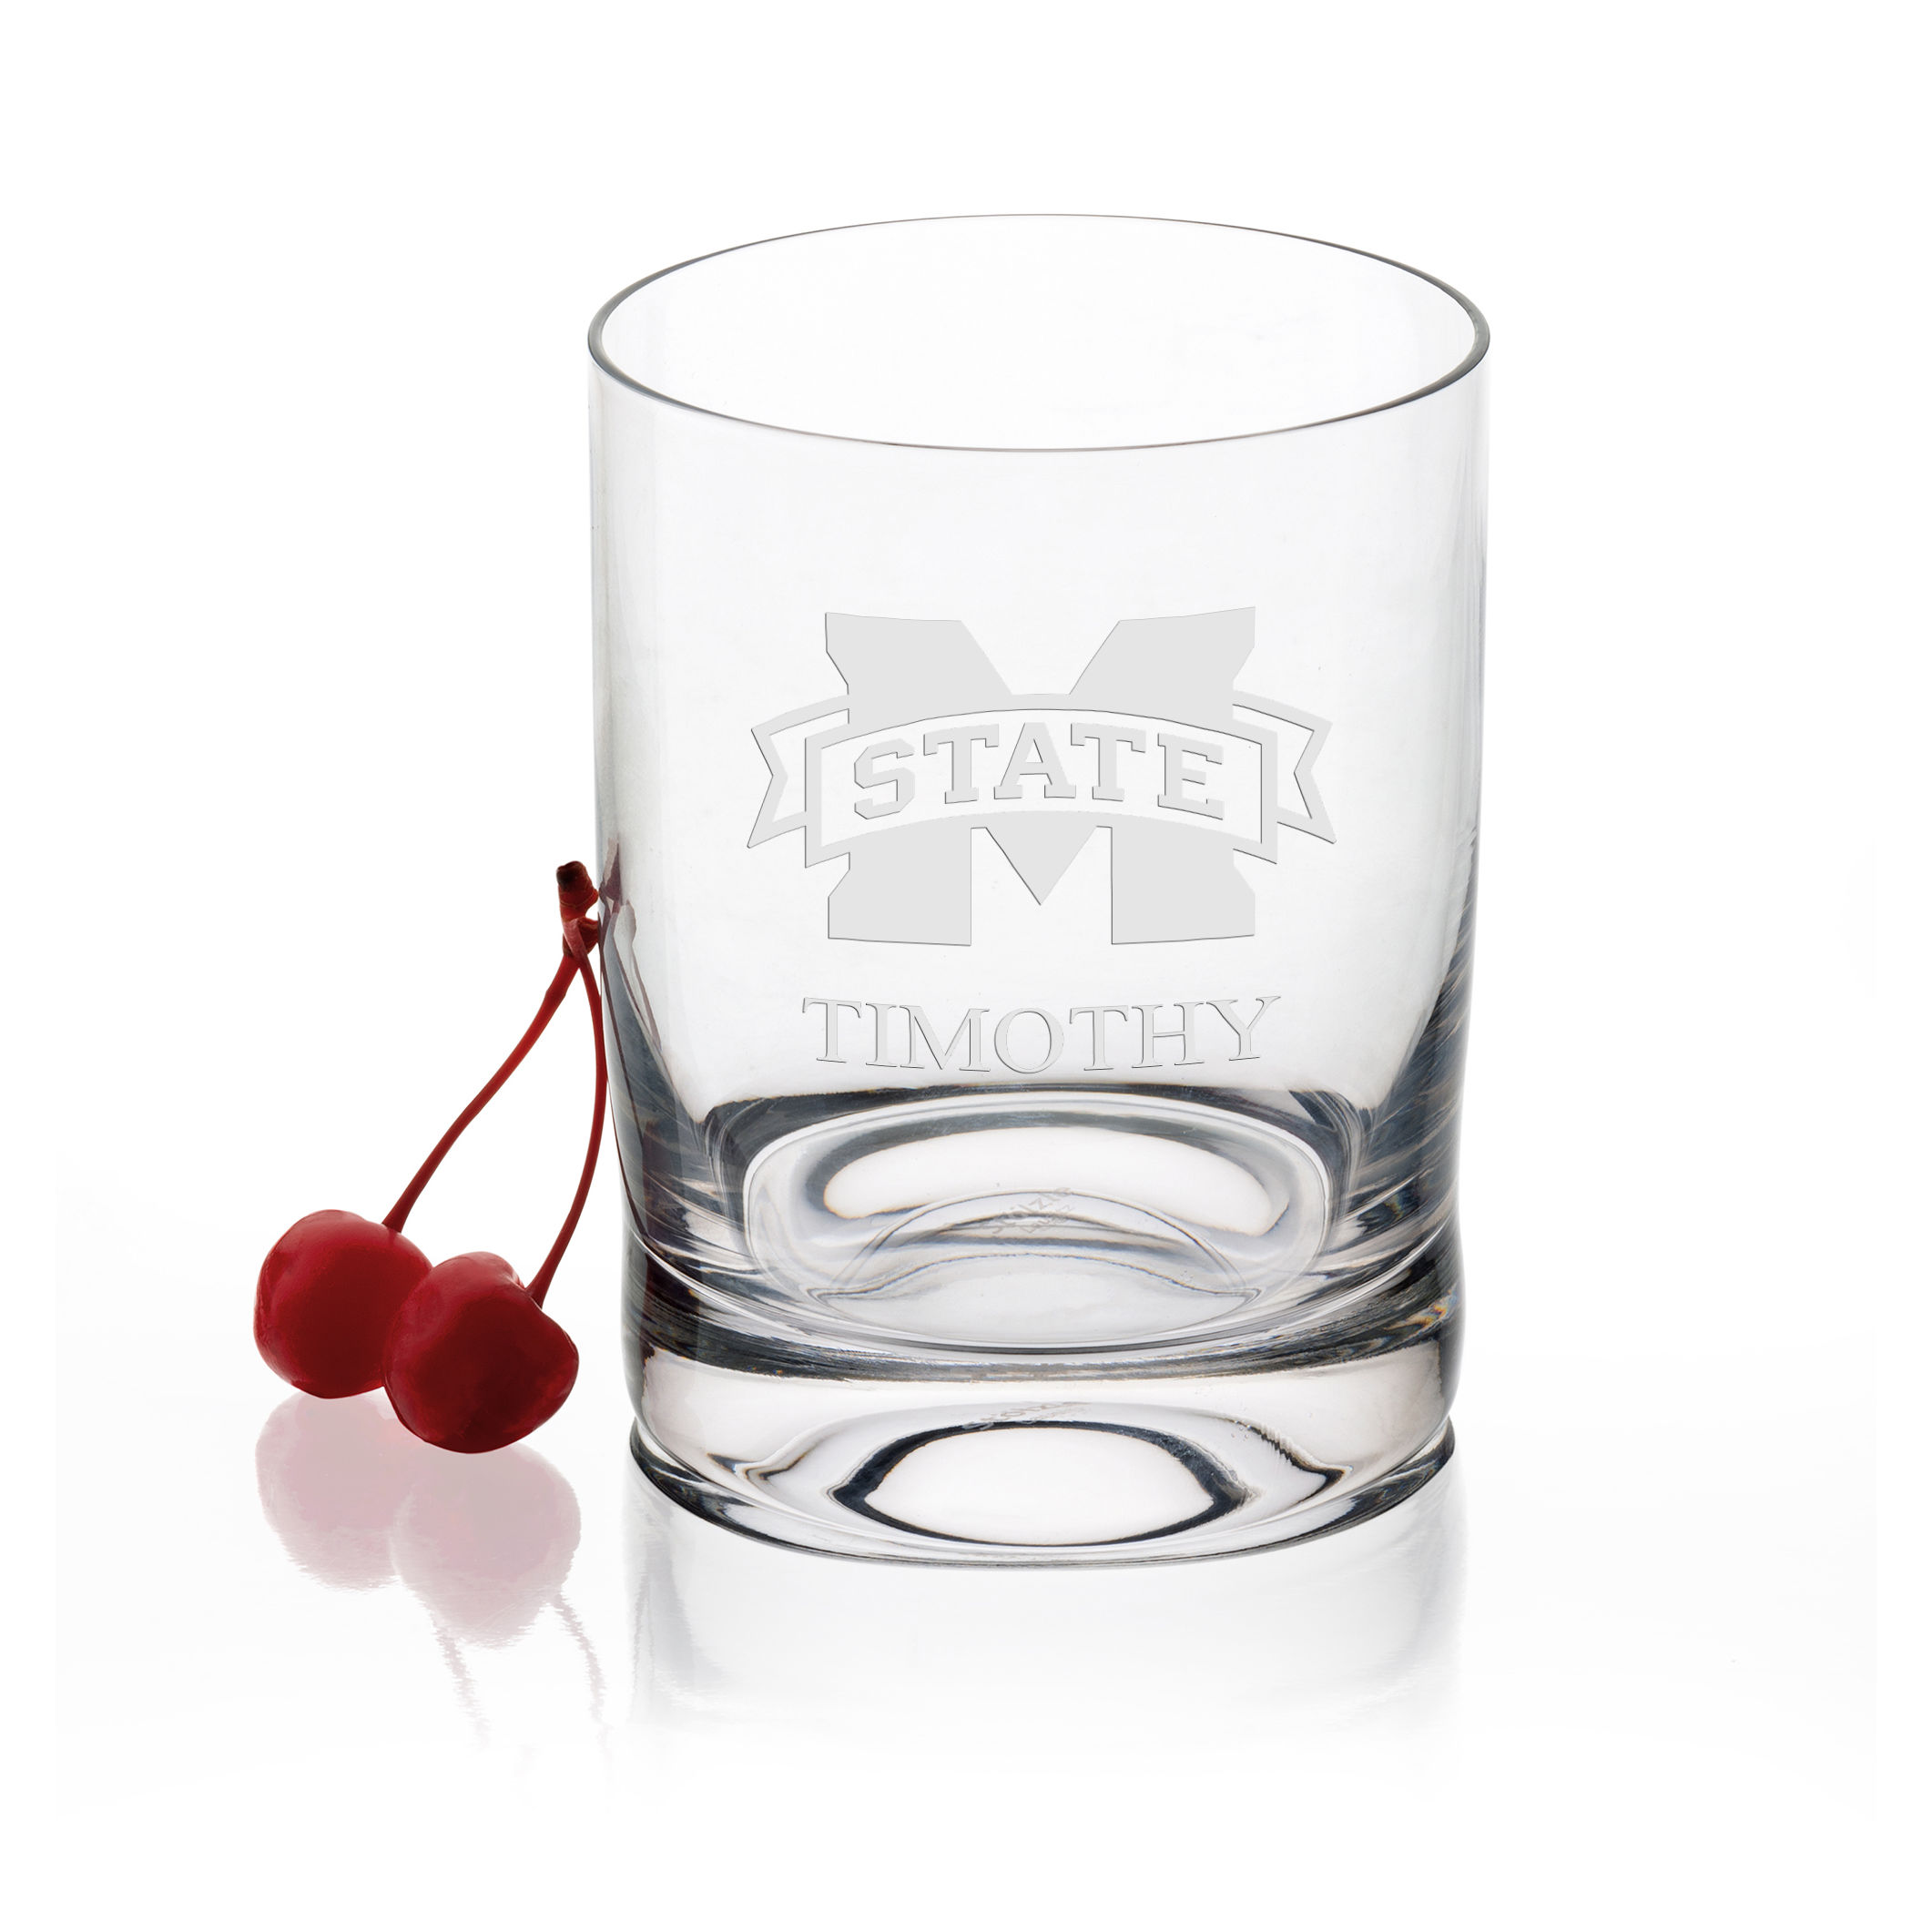 Mississippi State Tumbler Glasses - Set of 2